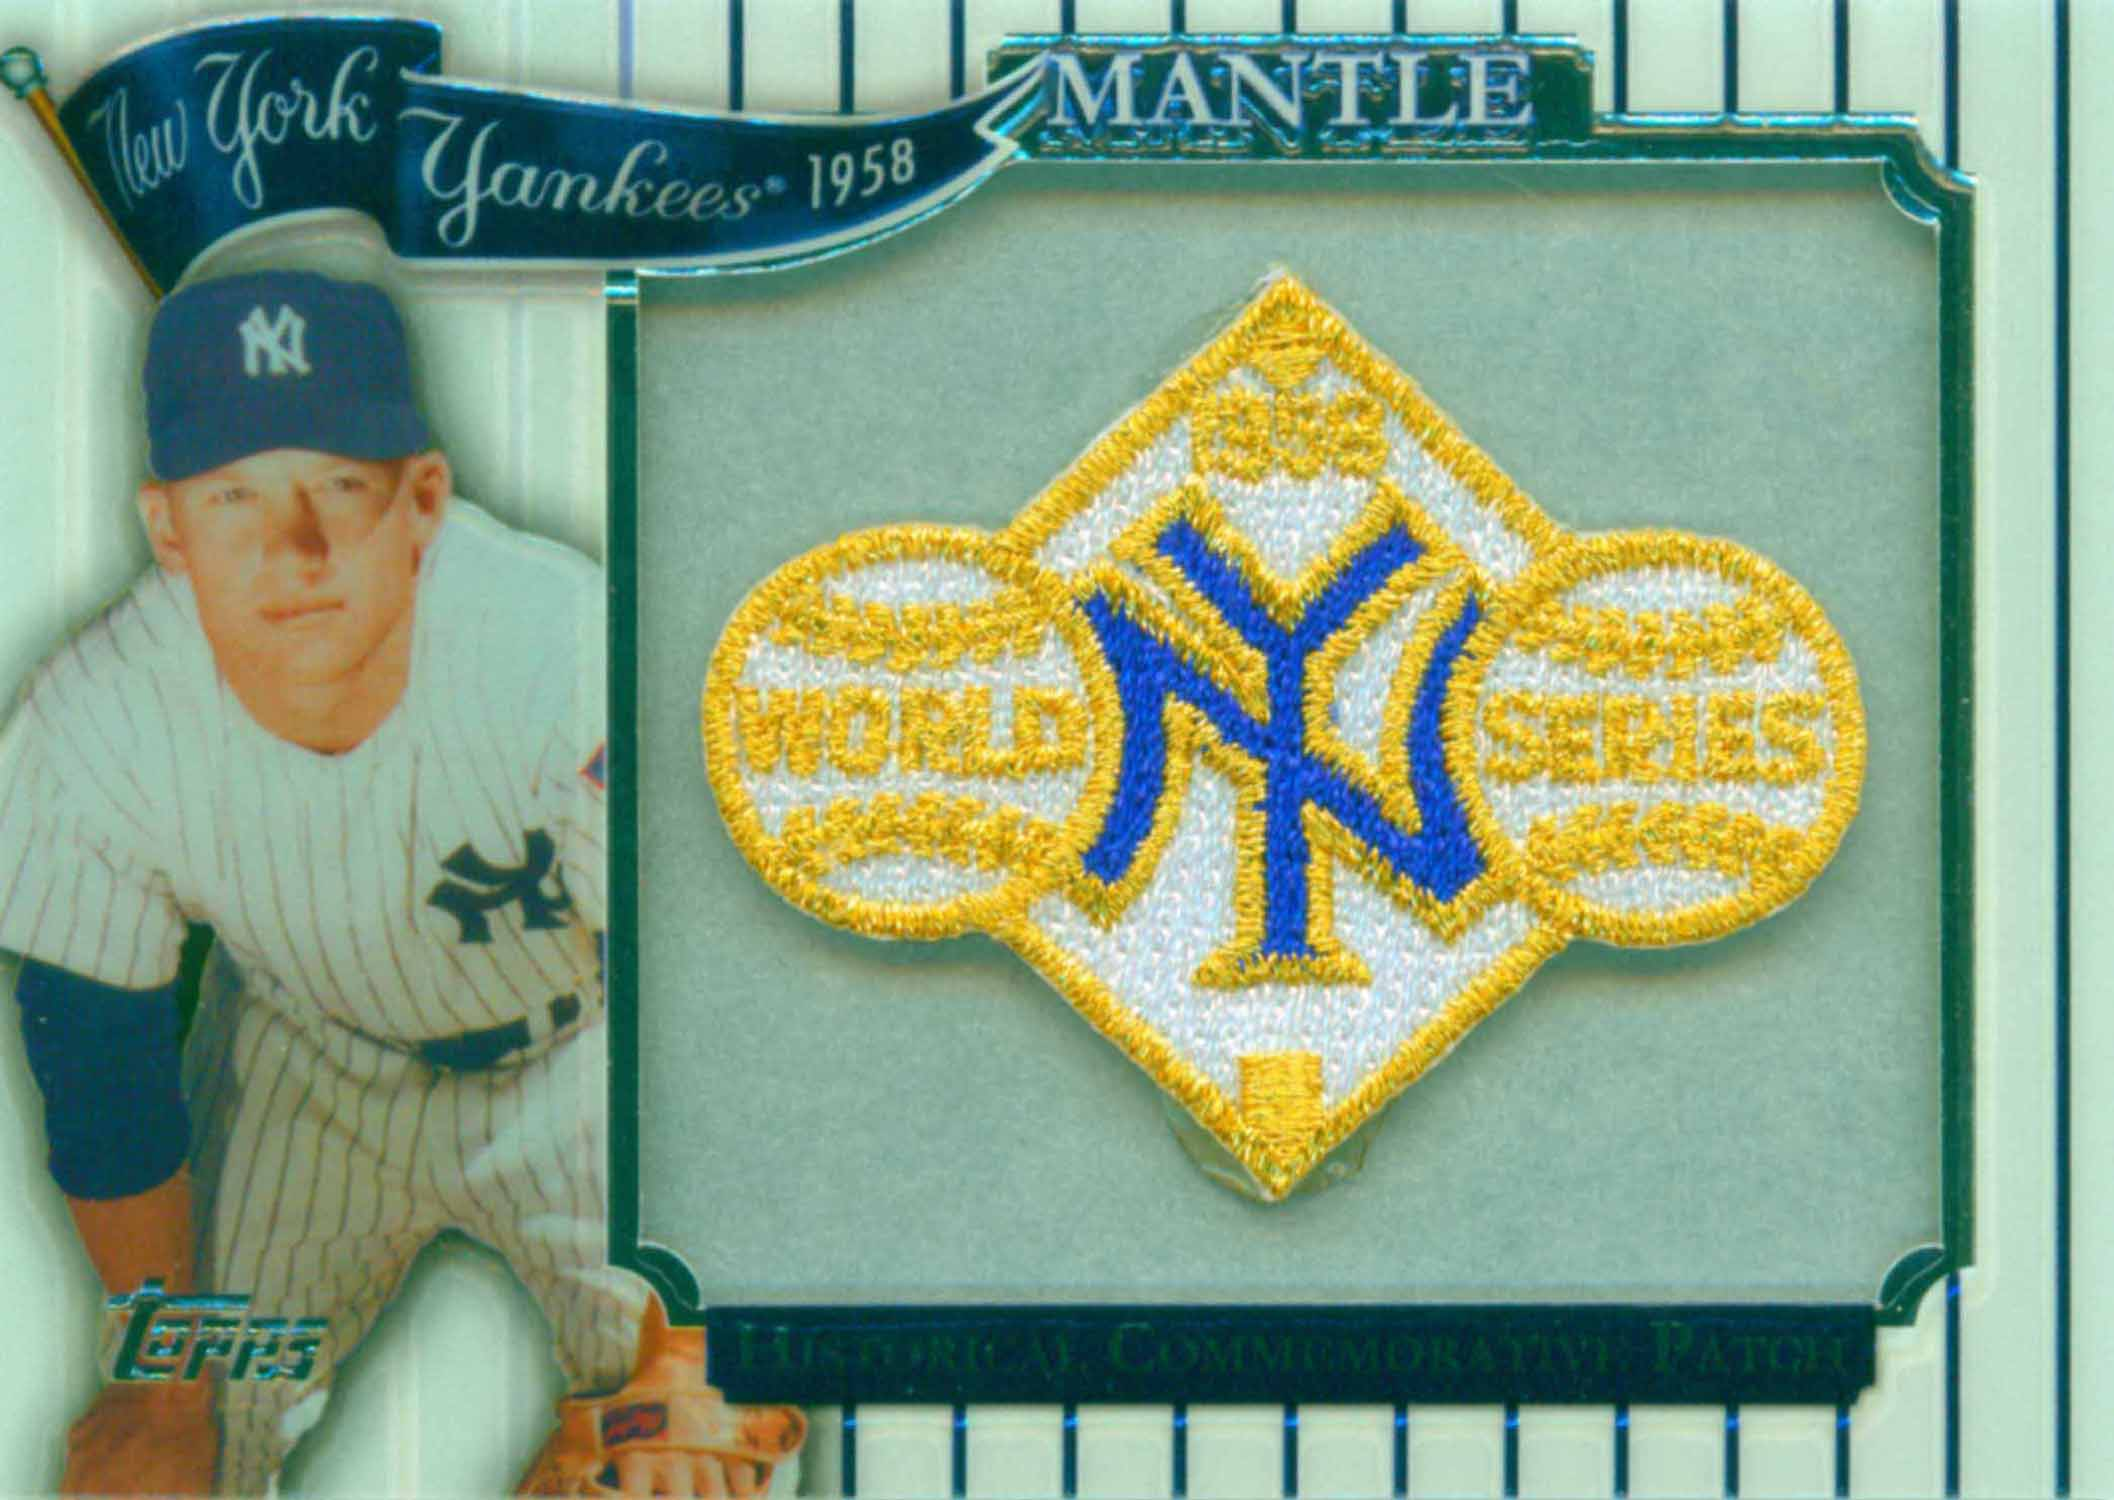 2009 Topps Factory Set Target Mantle World Series Patch